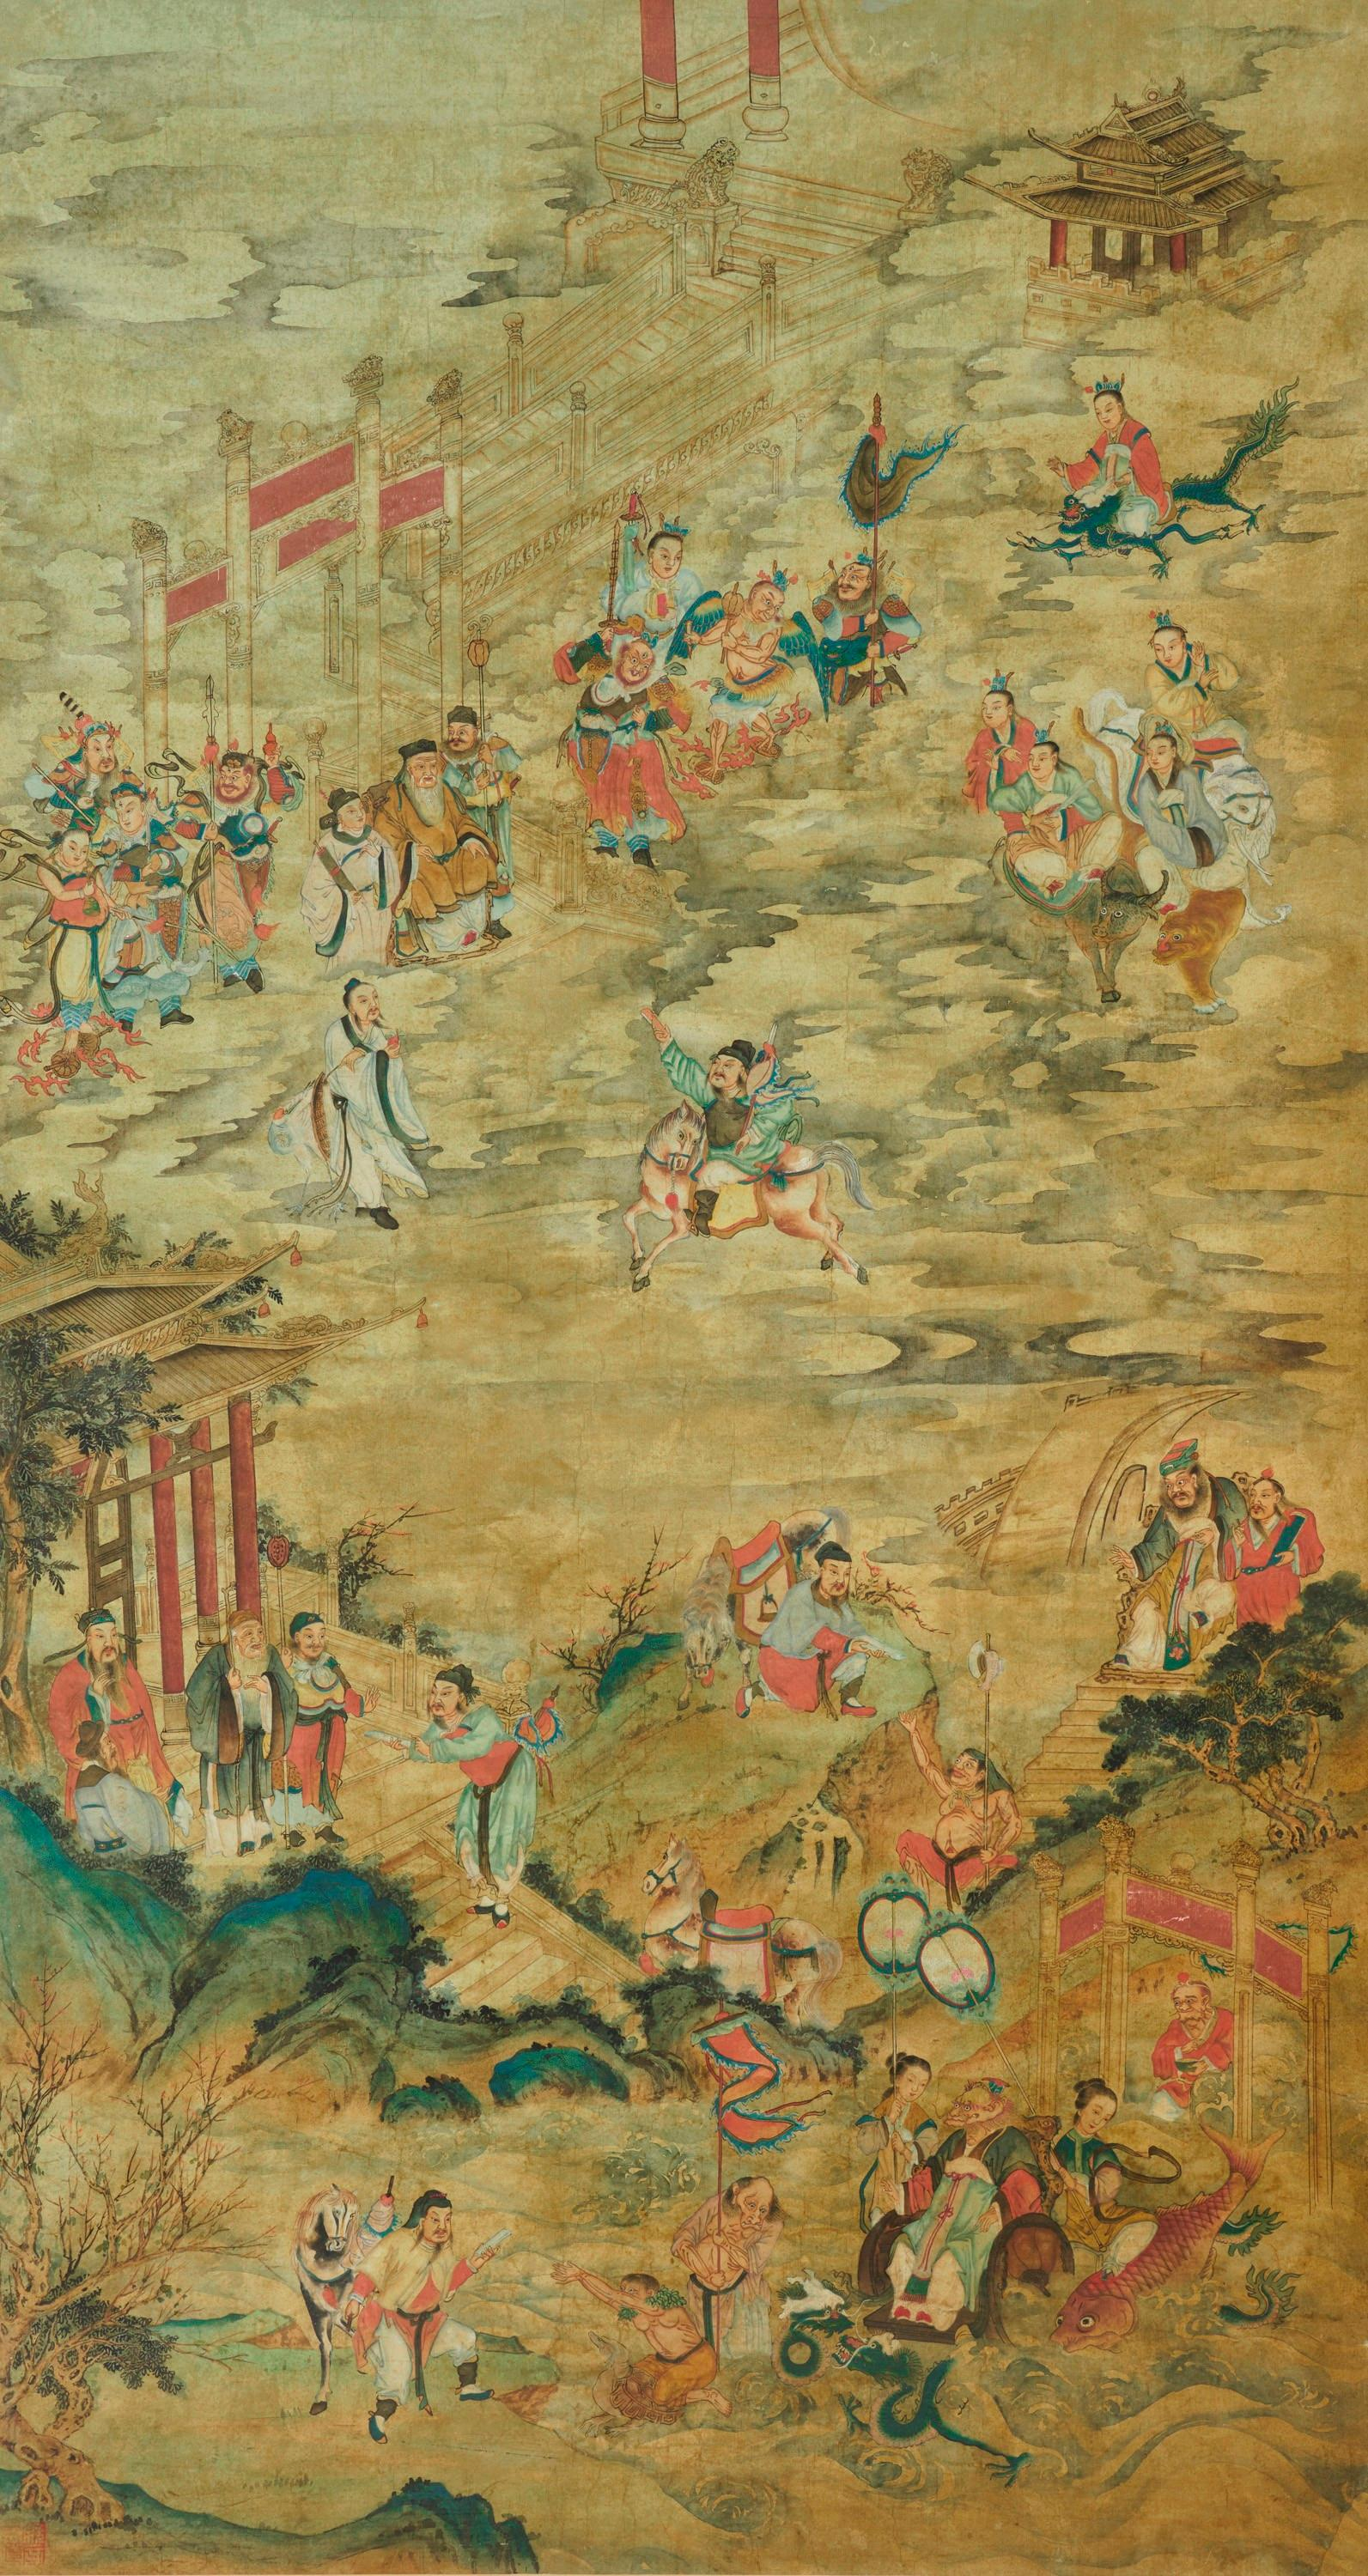 Ink and Watercolor Chinese Scroll depicting The Creation of The Gods (Fengshen Yanyi)